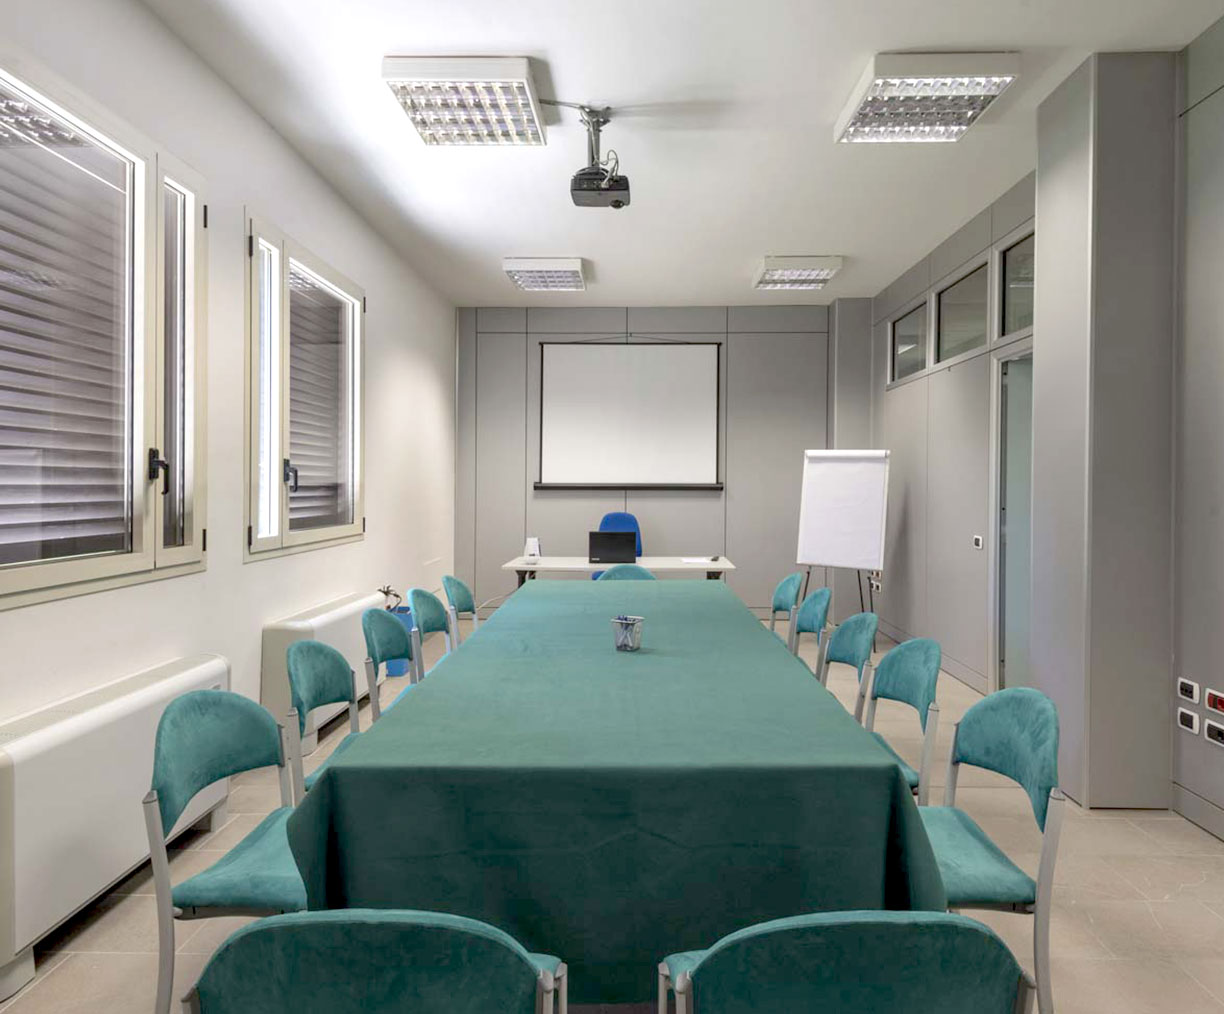 Meeting room N.5 with video projector